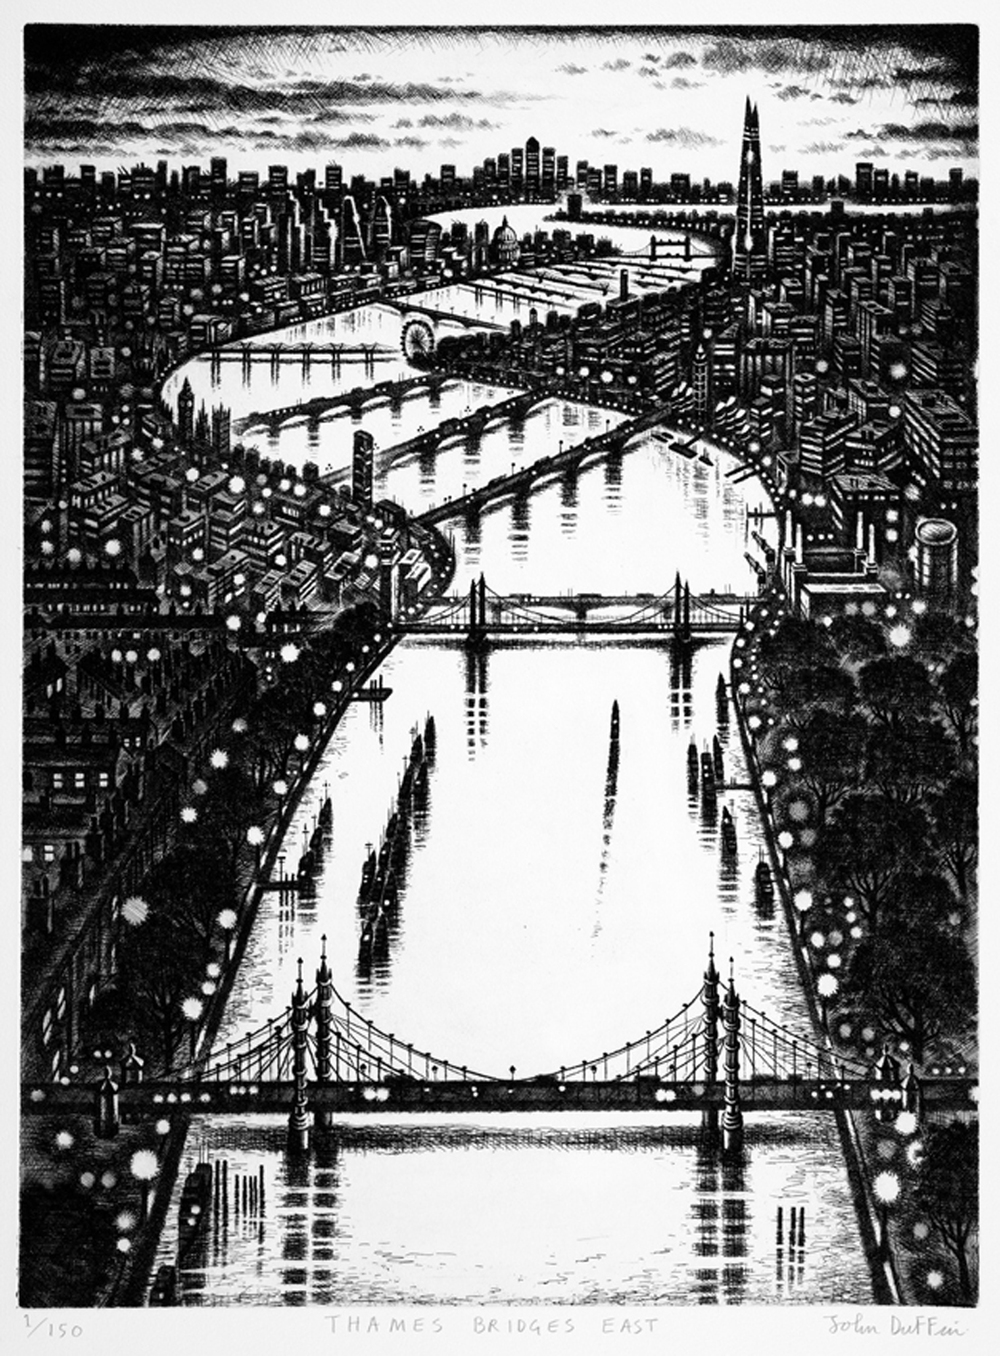 John Duffin   Thames Bridges East   etching